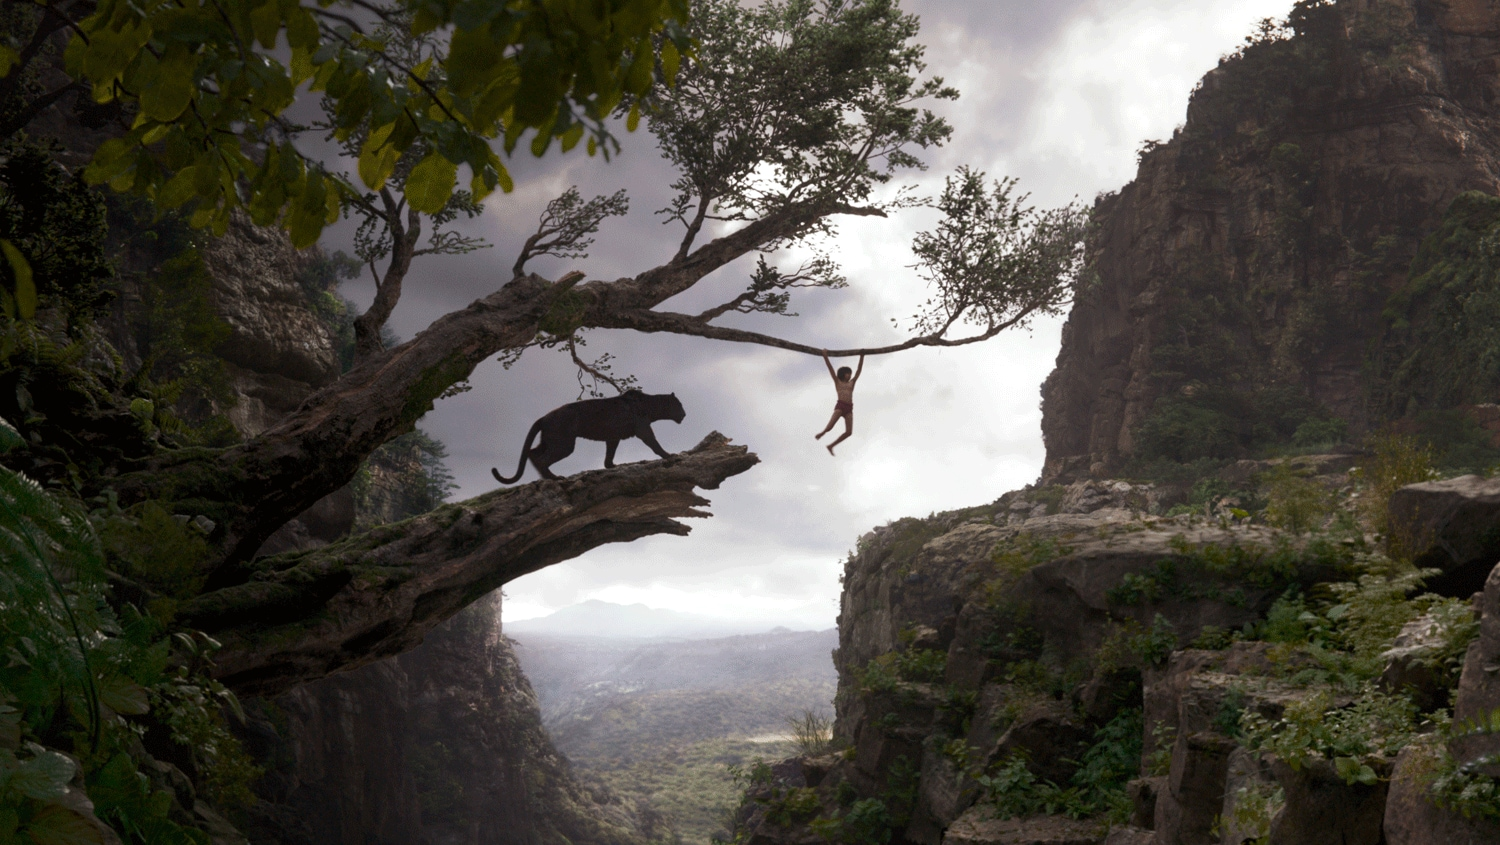 A still from The Jungle Book